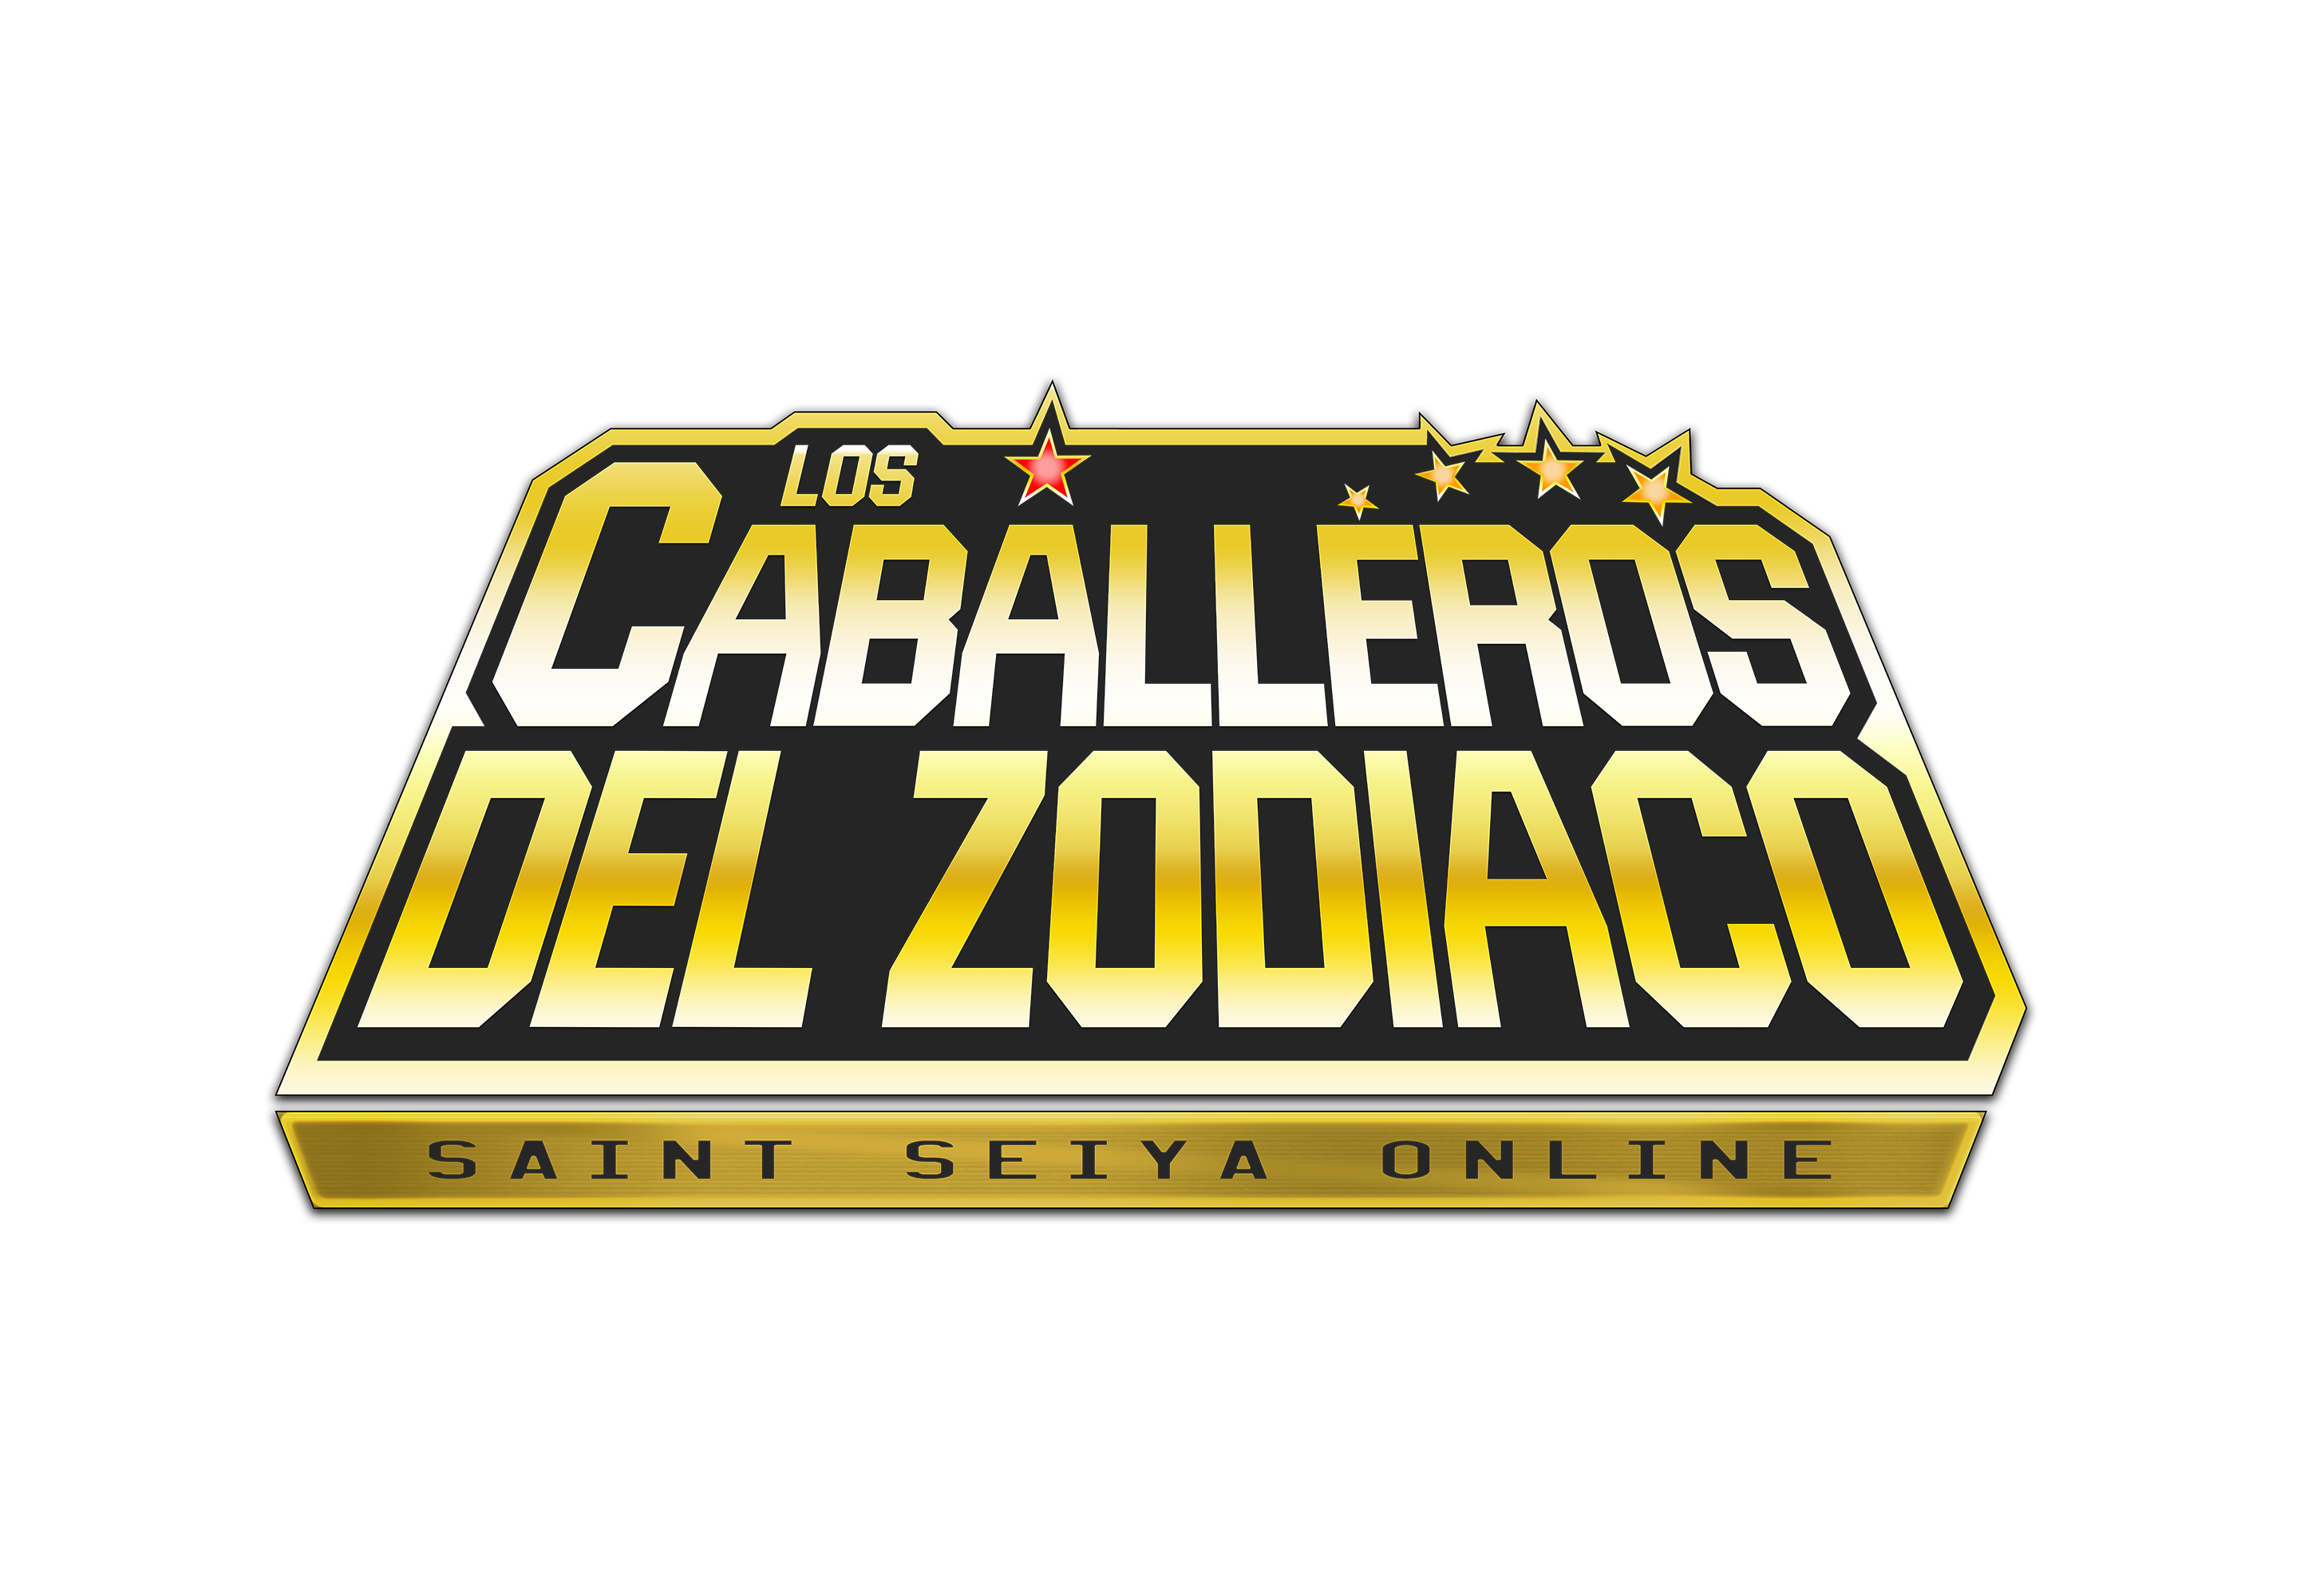 Saint Seiya On-Line